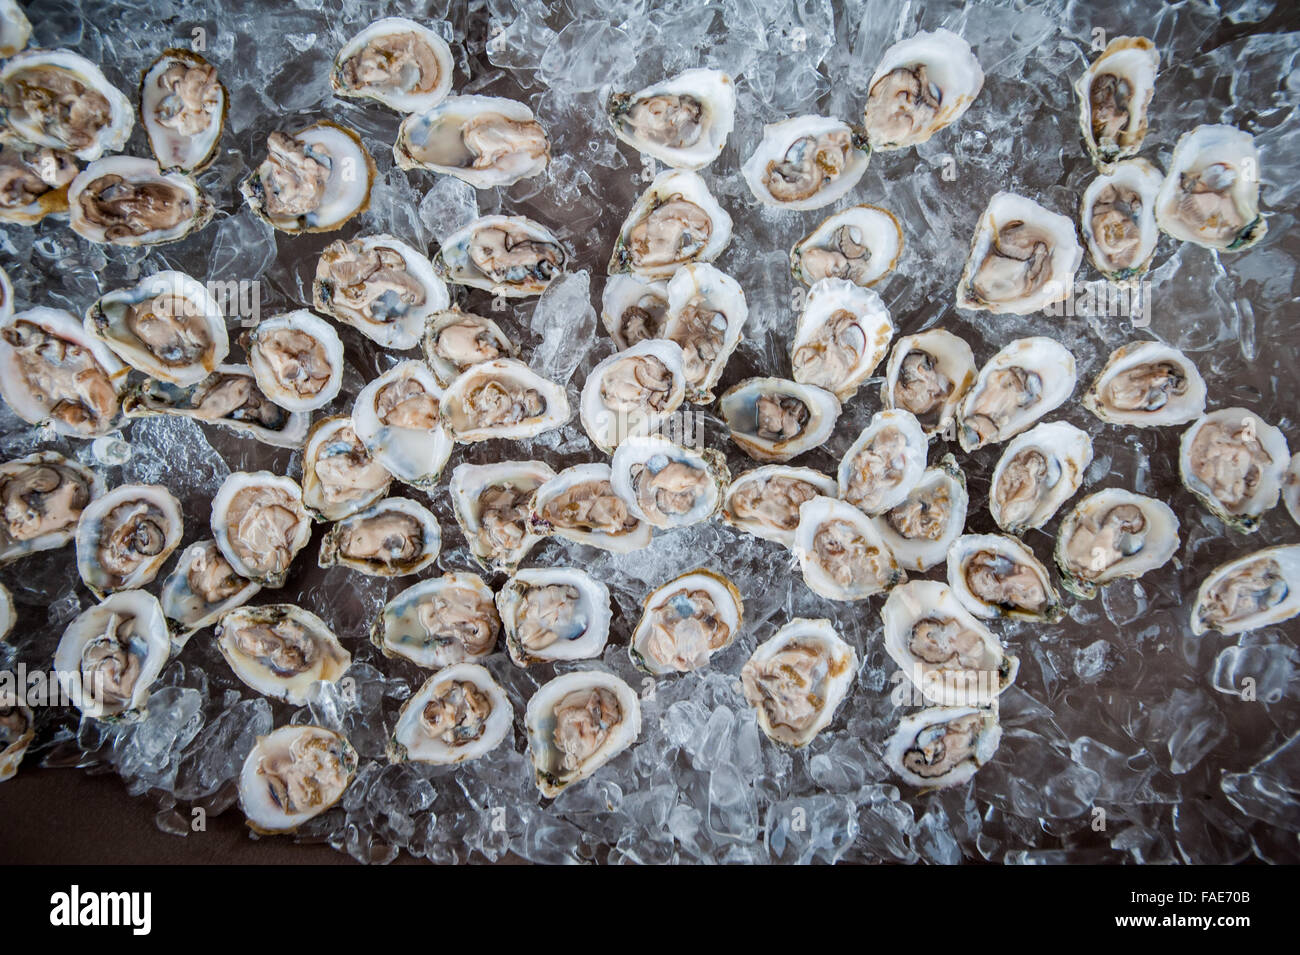 Shucked oysters on ice. - Stock Image